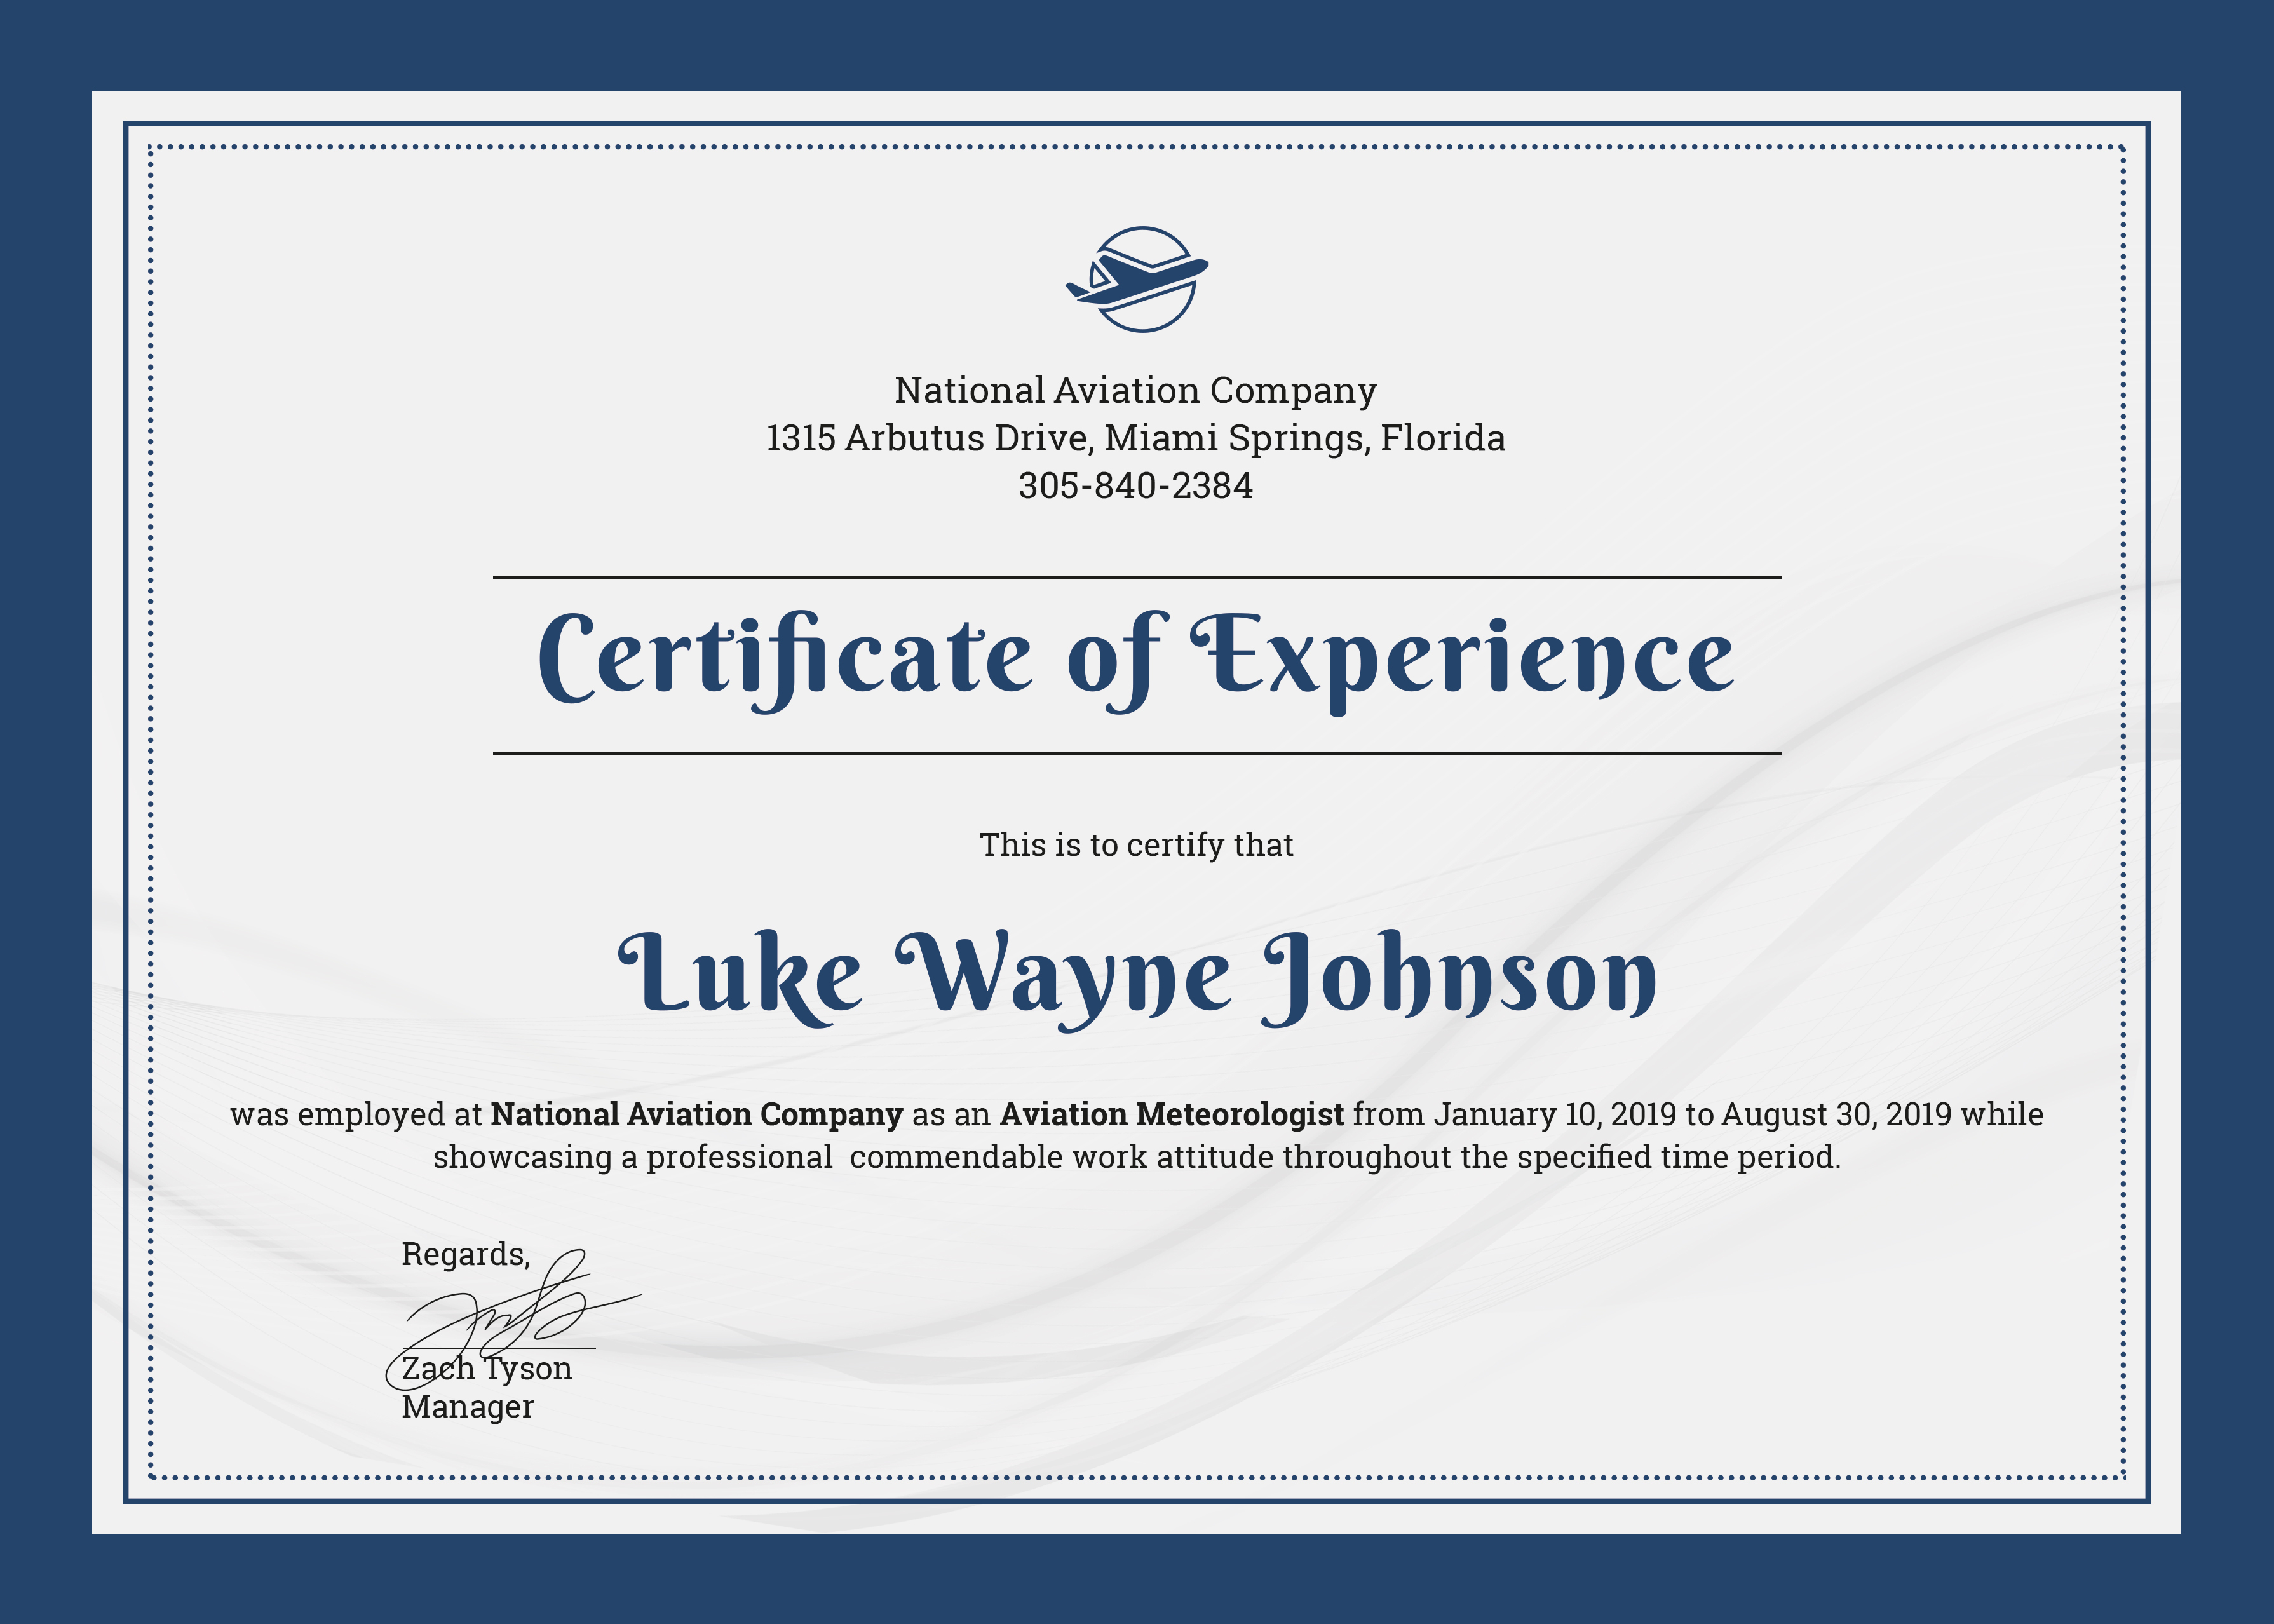 Certificate Of Experience Certificate Of